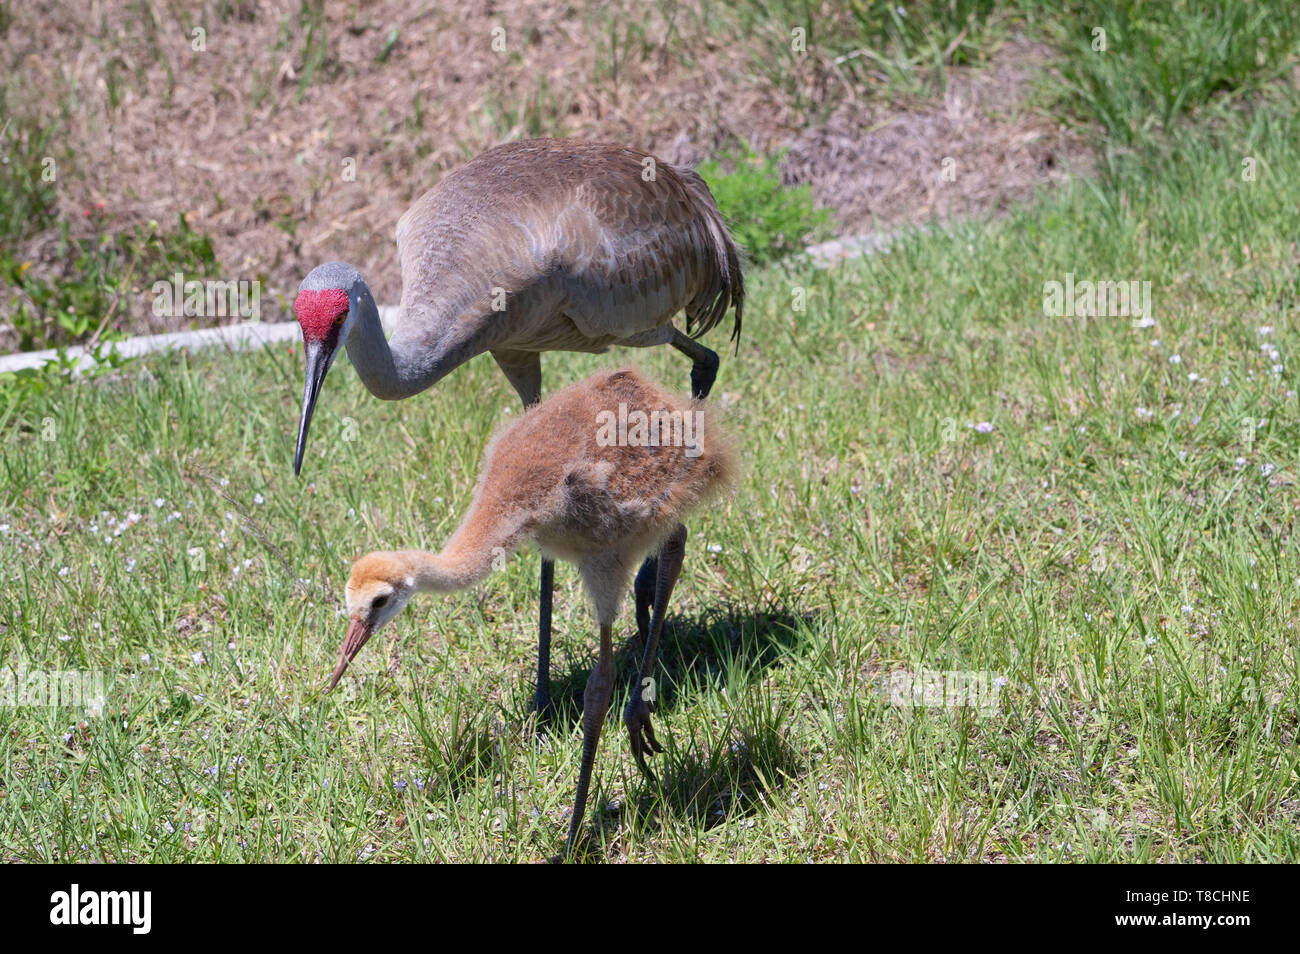 Florida Sandhill Crane Adult and Young Juvenile Walking Through Green Grassy Meadow - Stock Image